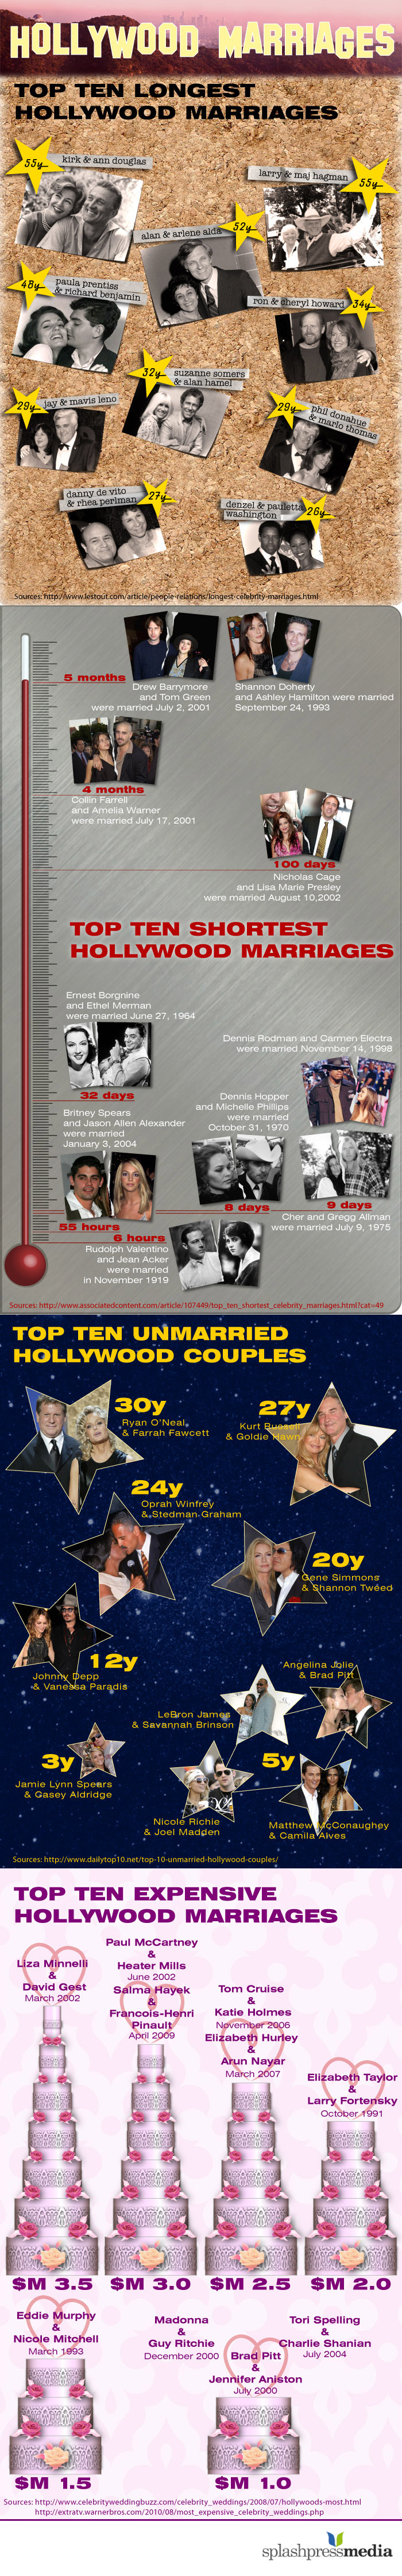 Featured image for Hollywood Marriages: Shortest, Longest and Most Expensive Ones